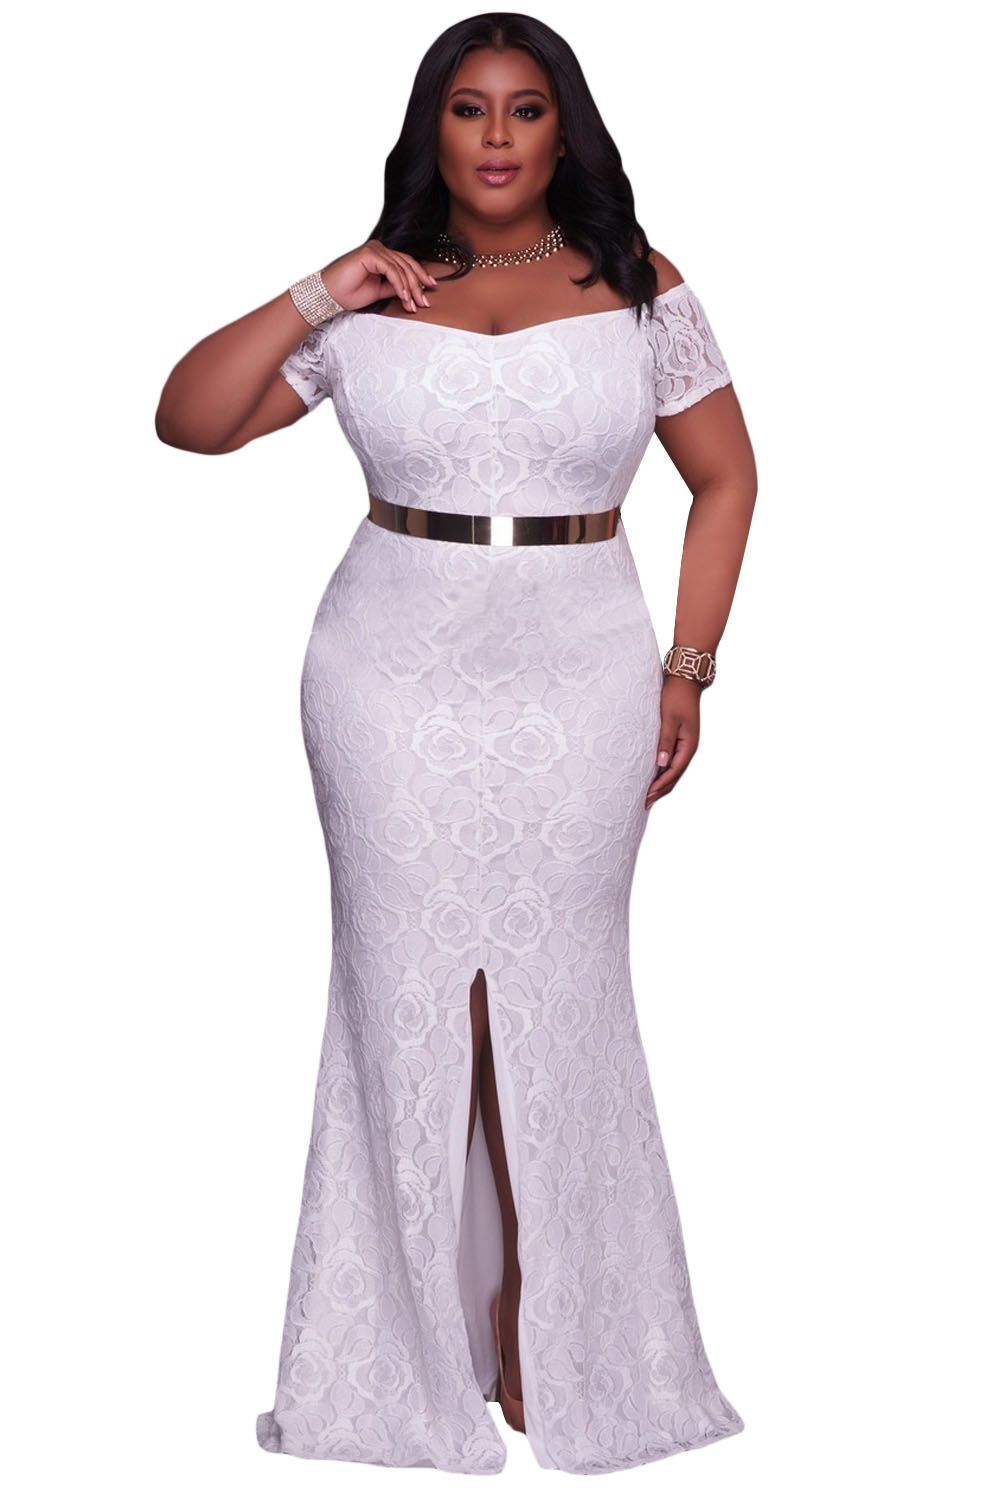 854a8dd11621a New Arrival Style Woman Pink Plus Size Off Shoulder Lace Gown Party Dress  XXXL White    To view further for this item